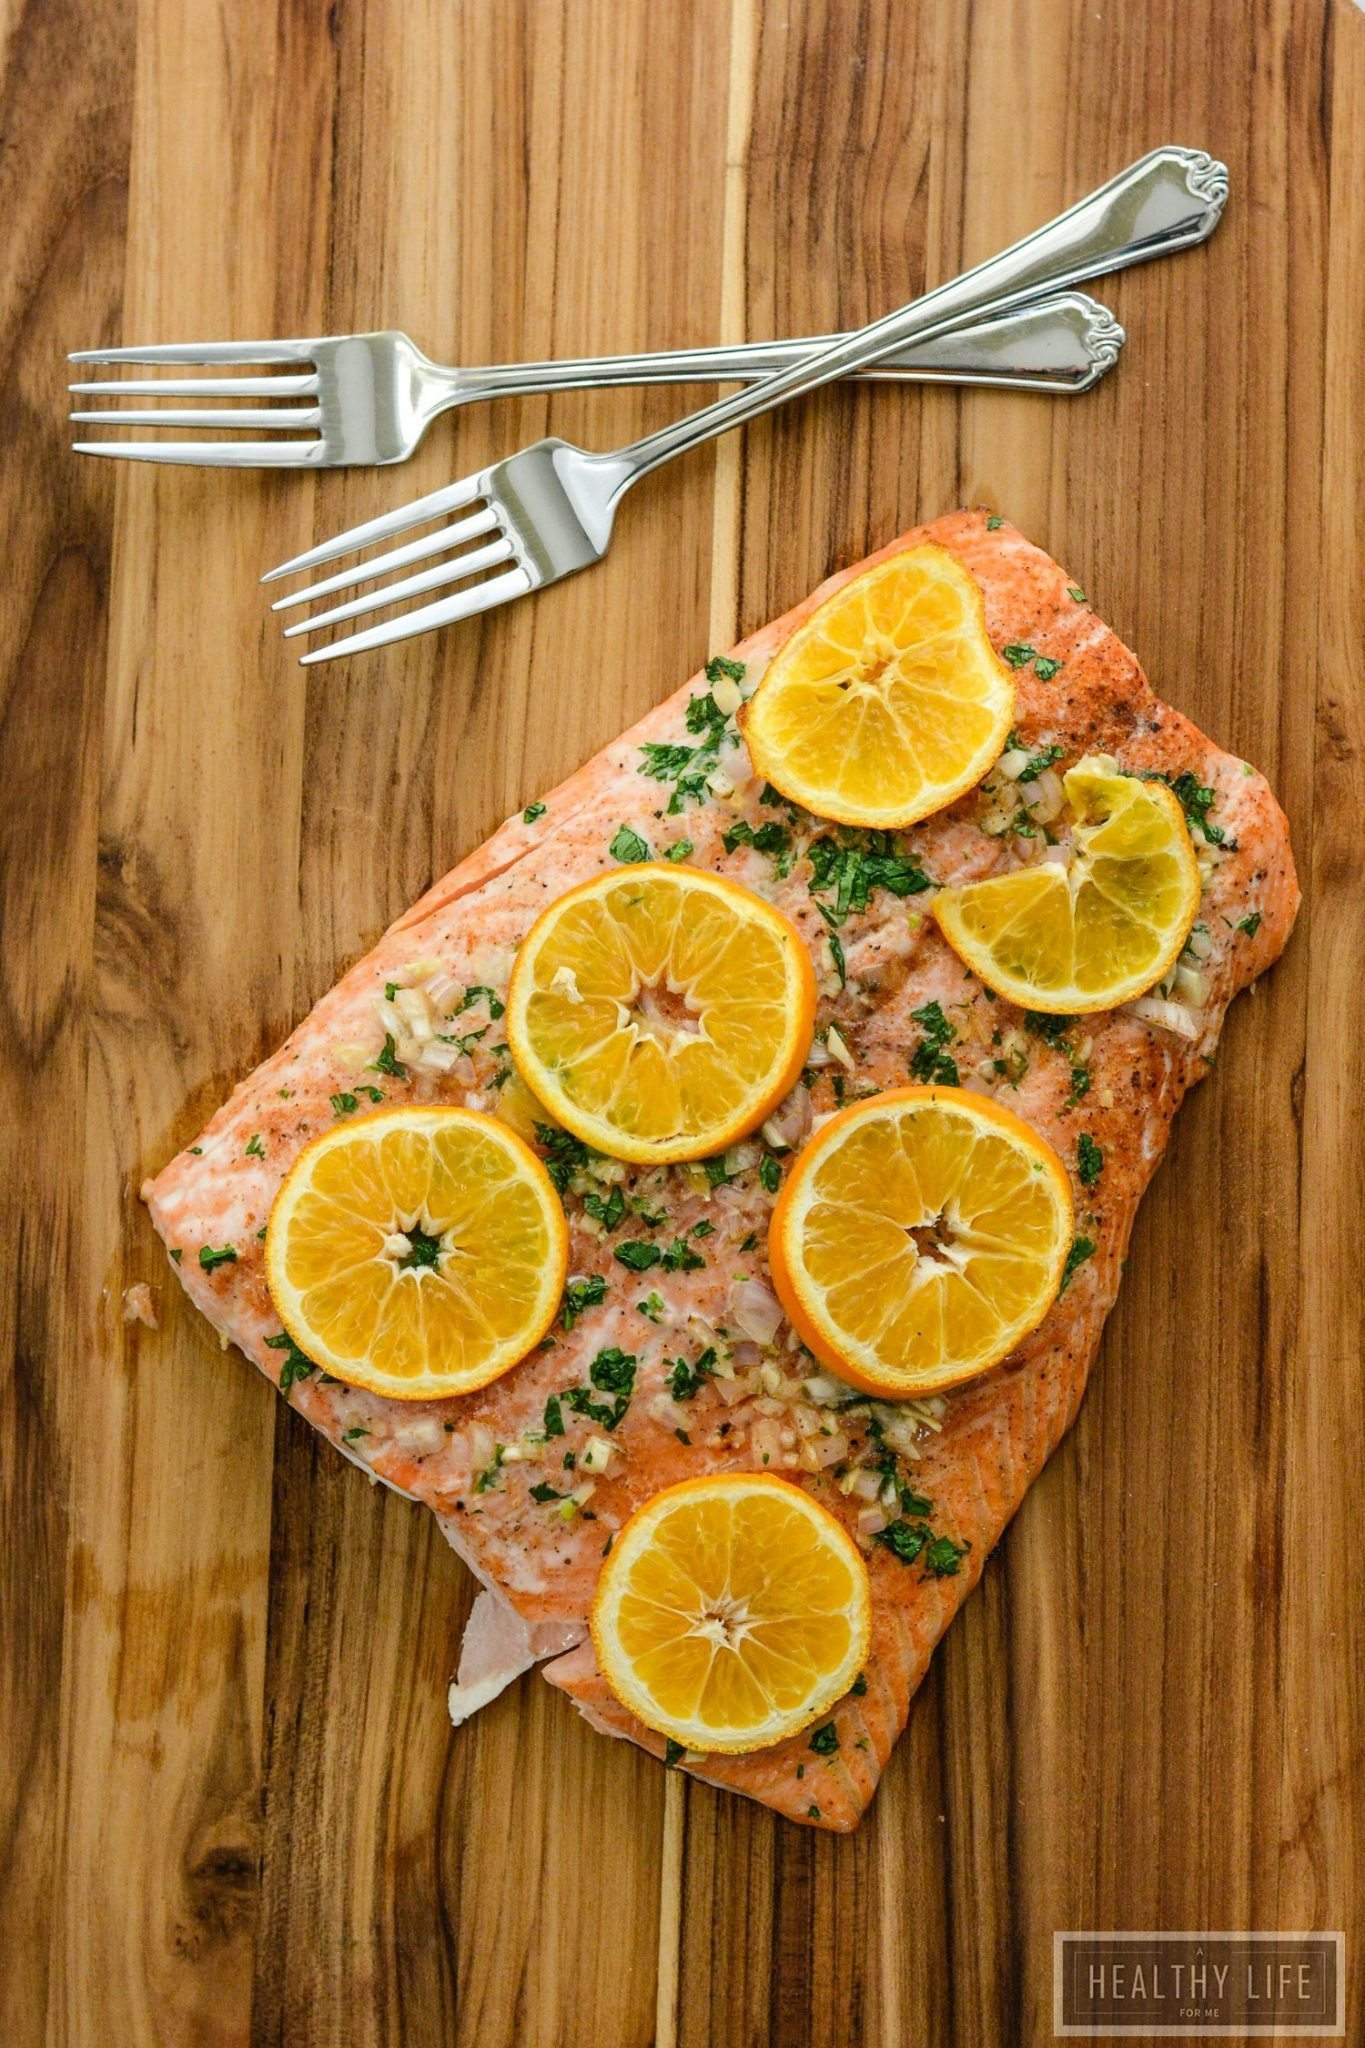 Roasted salmon with clementine a healthy life for me roasted salmon and clementine gluten free paleo high protein dinner recipe ahealthylifeforme forumfinder Images